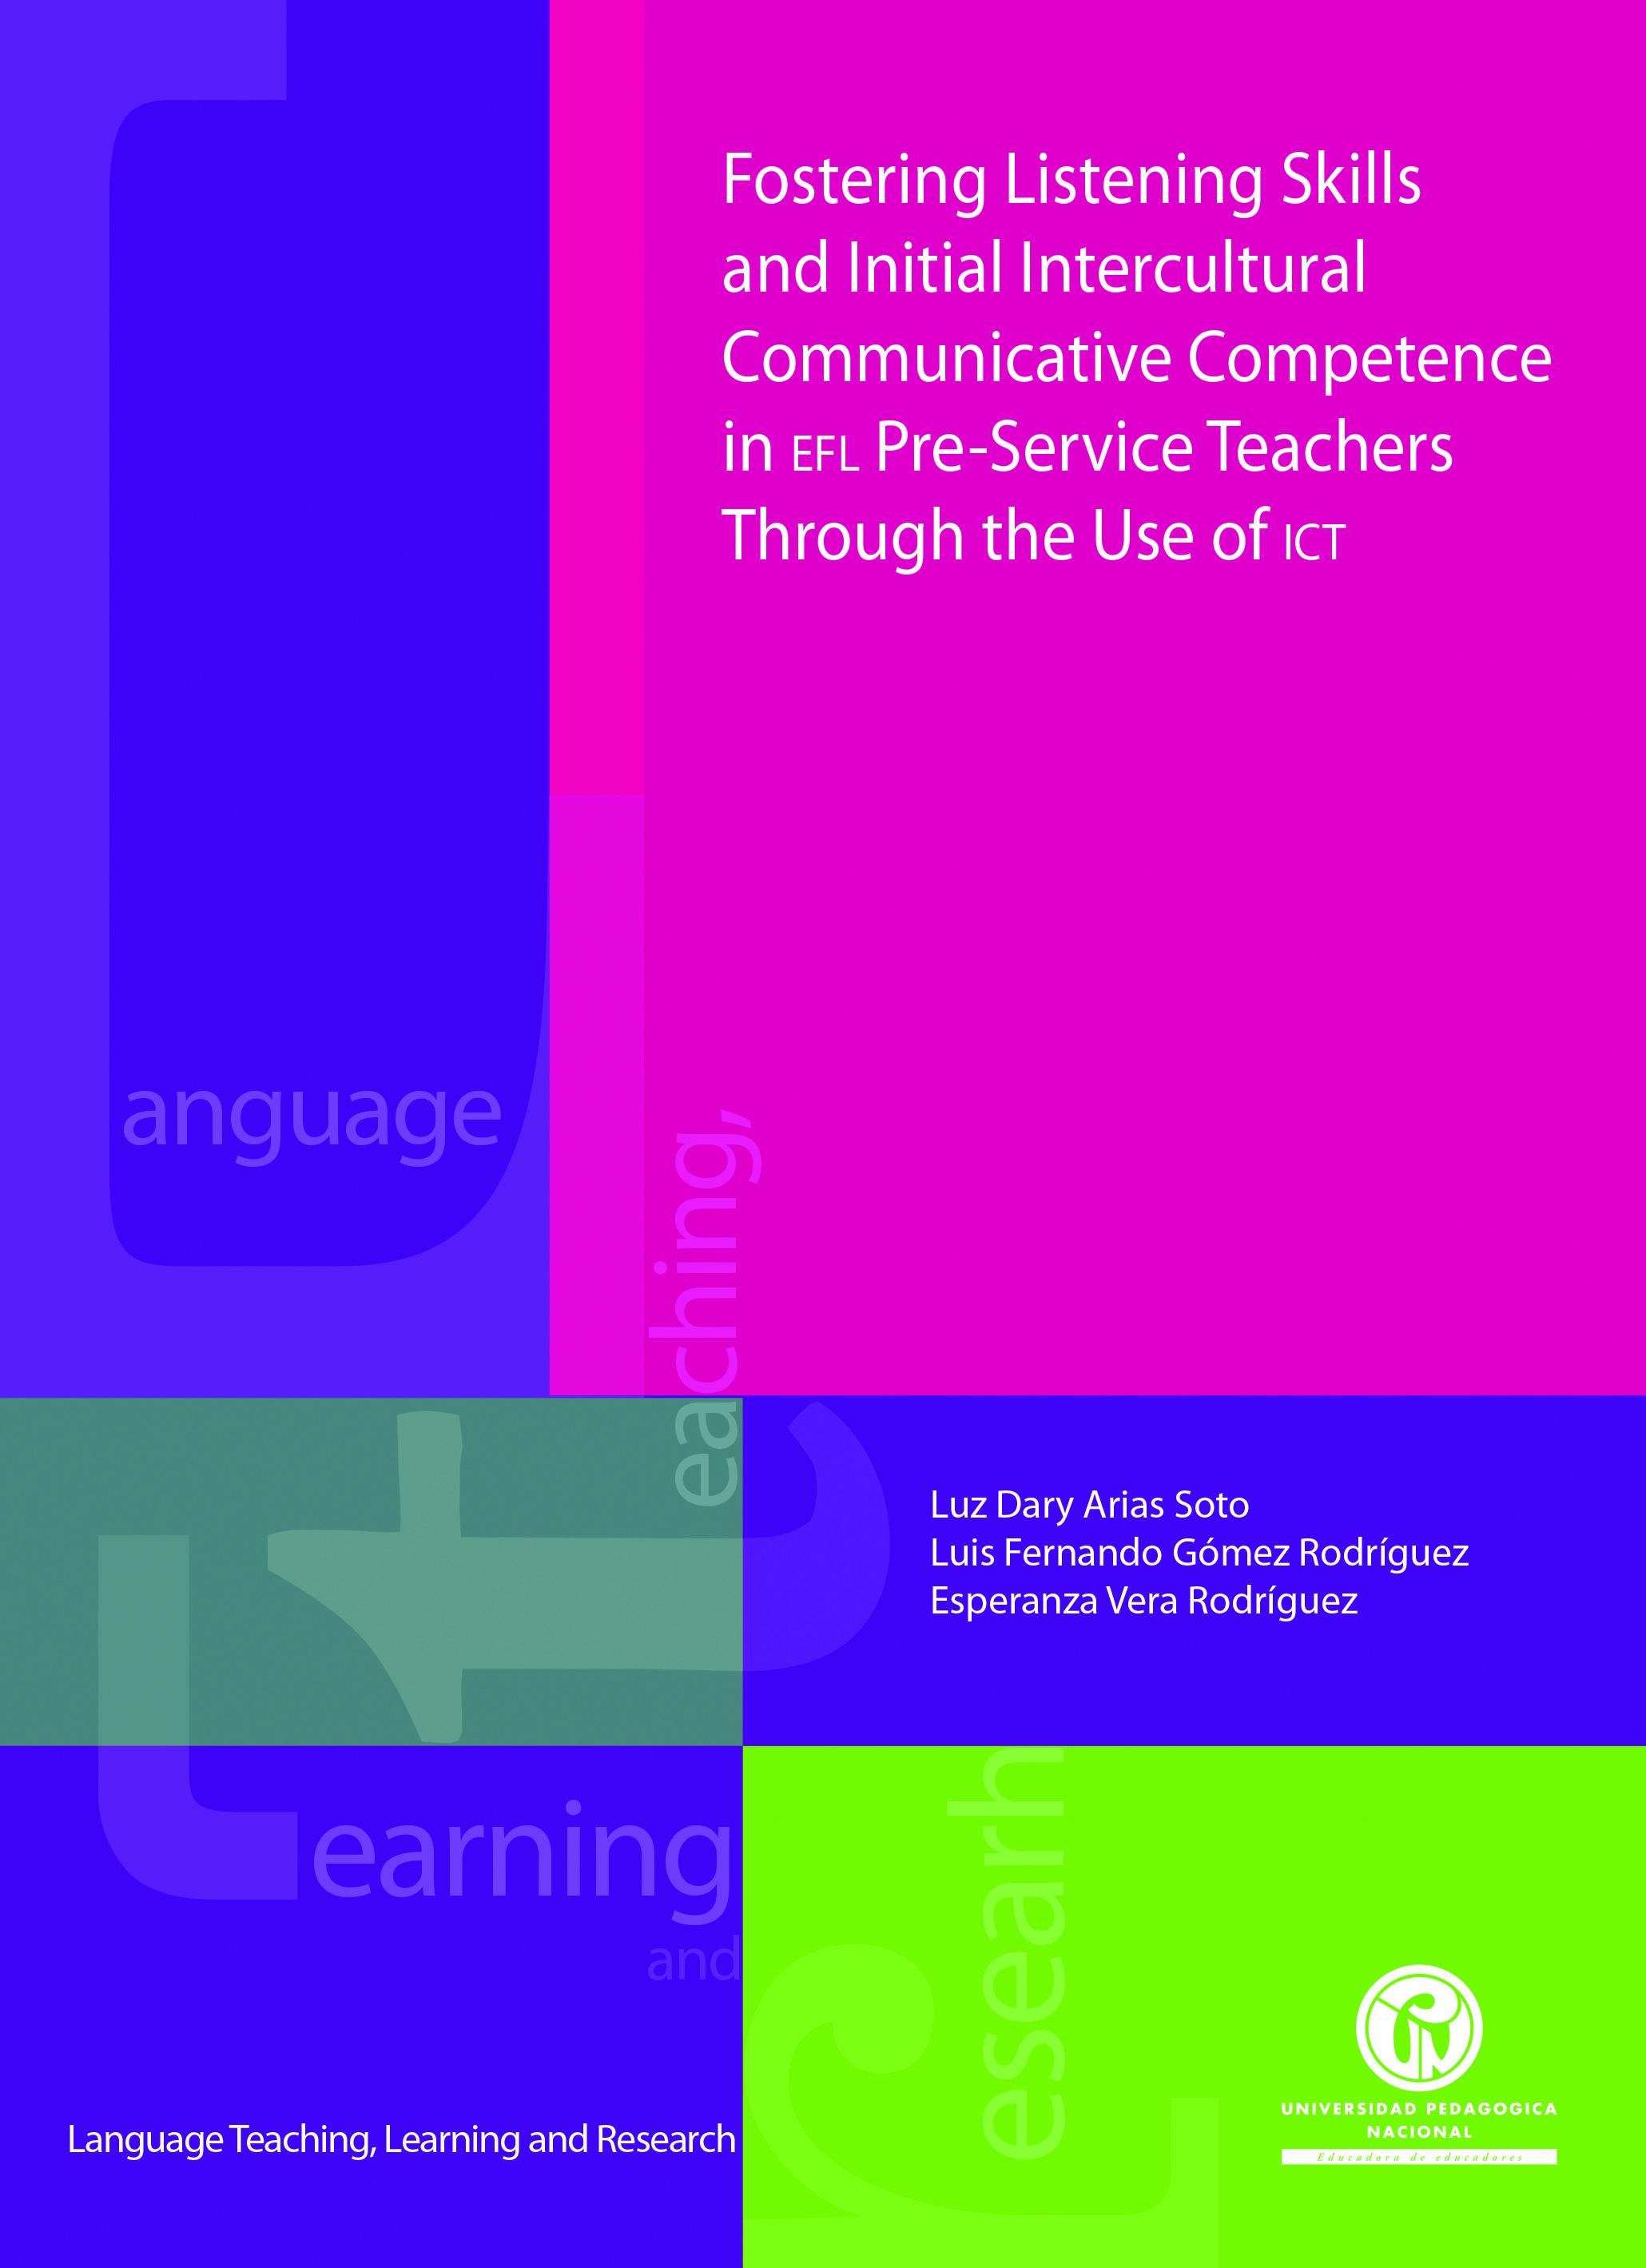 Fostering Listening Skills and Initial Intercultural Communicative Competence in EFL Pre-Service Teachers Through the Use of ICT